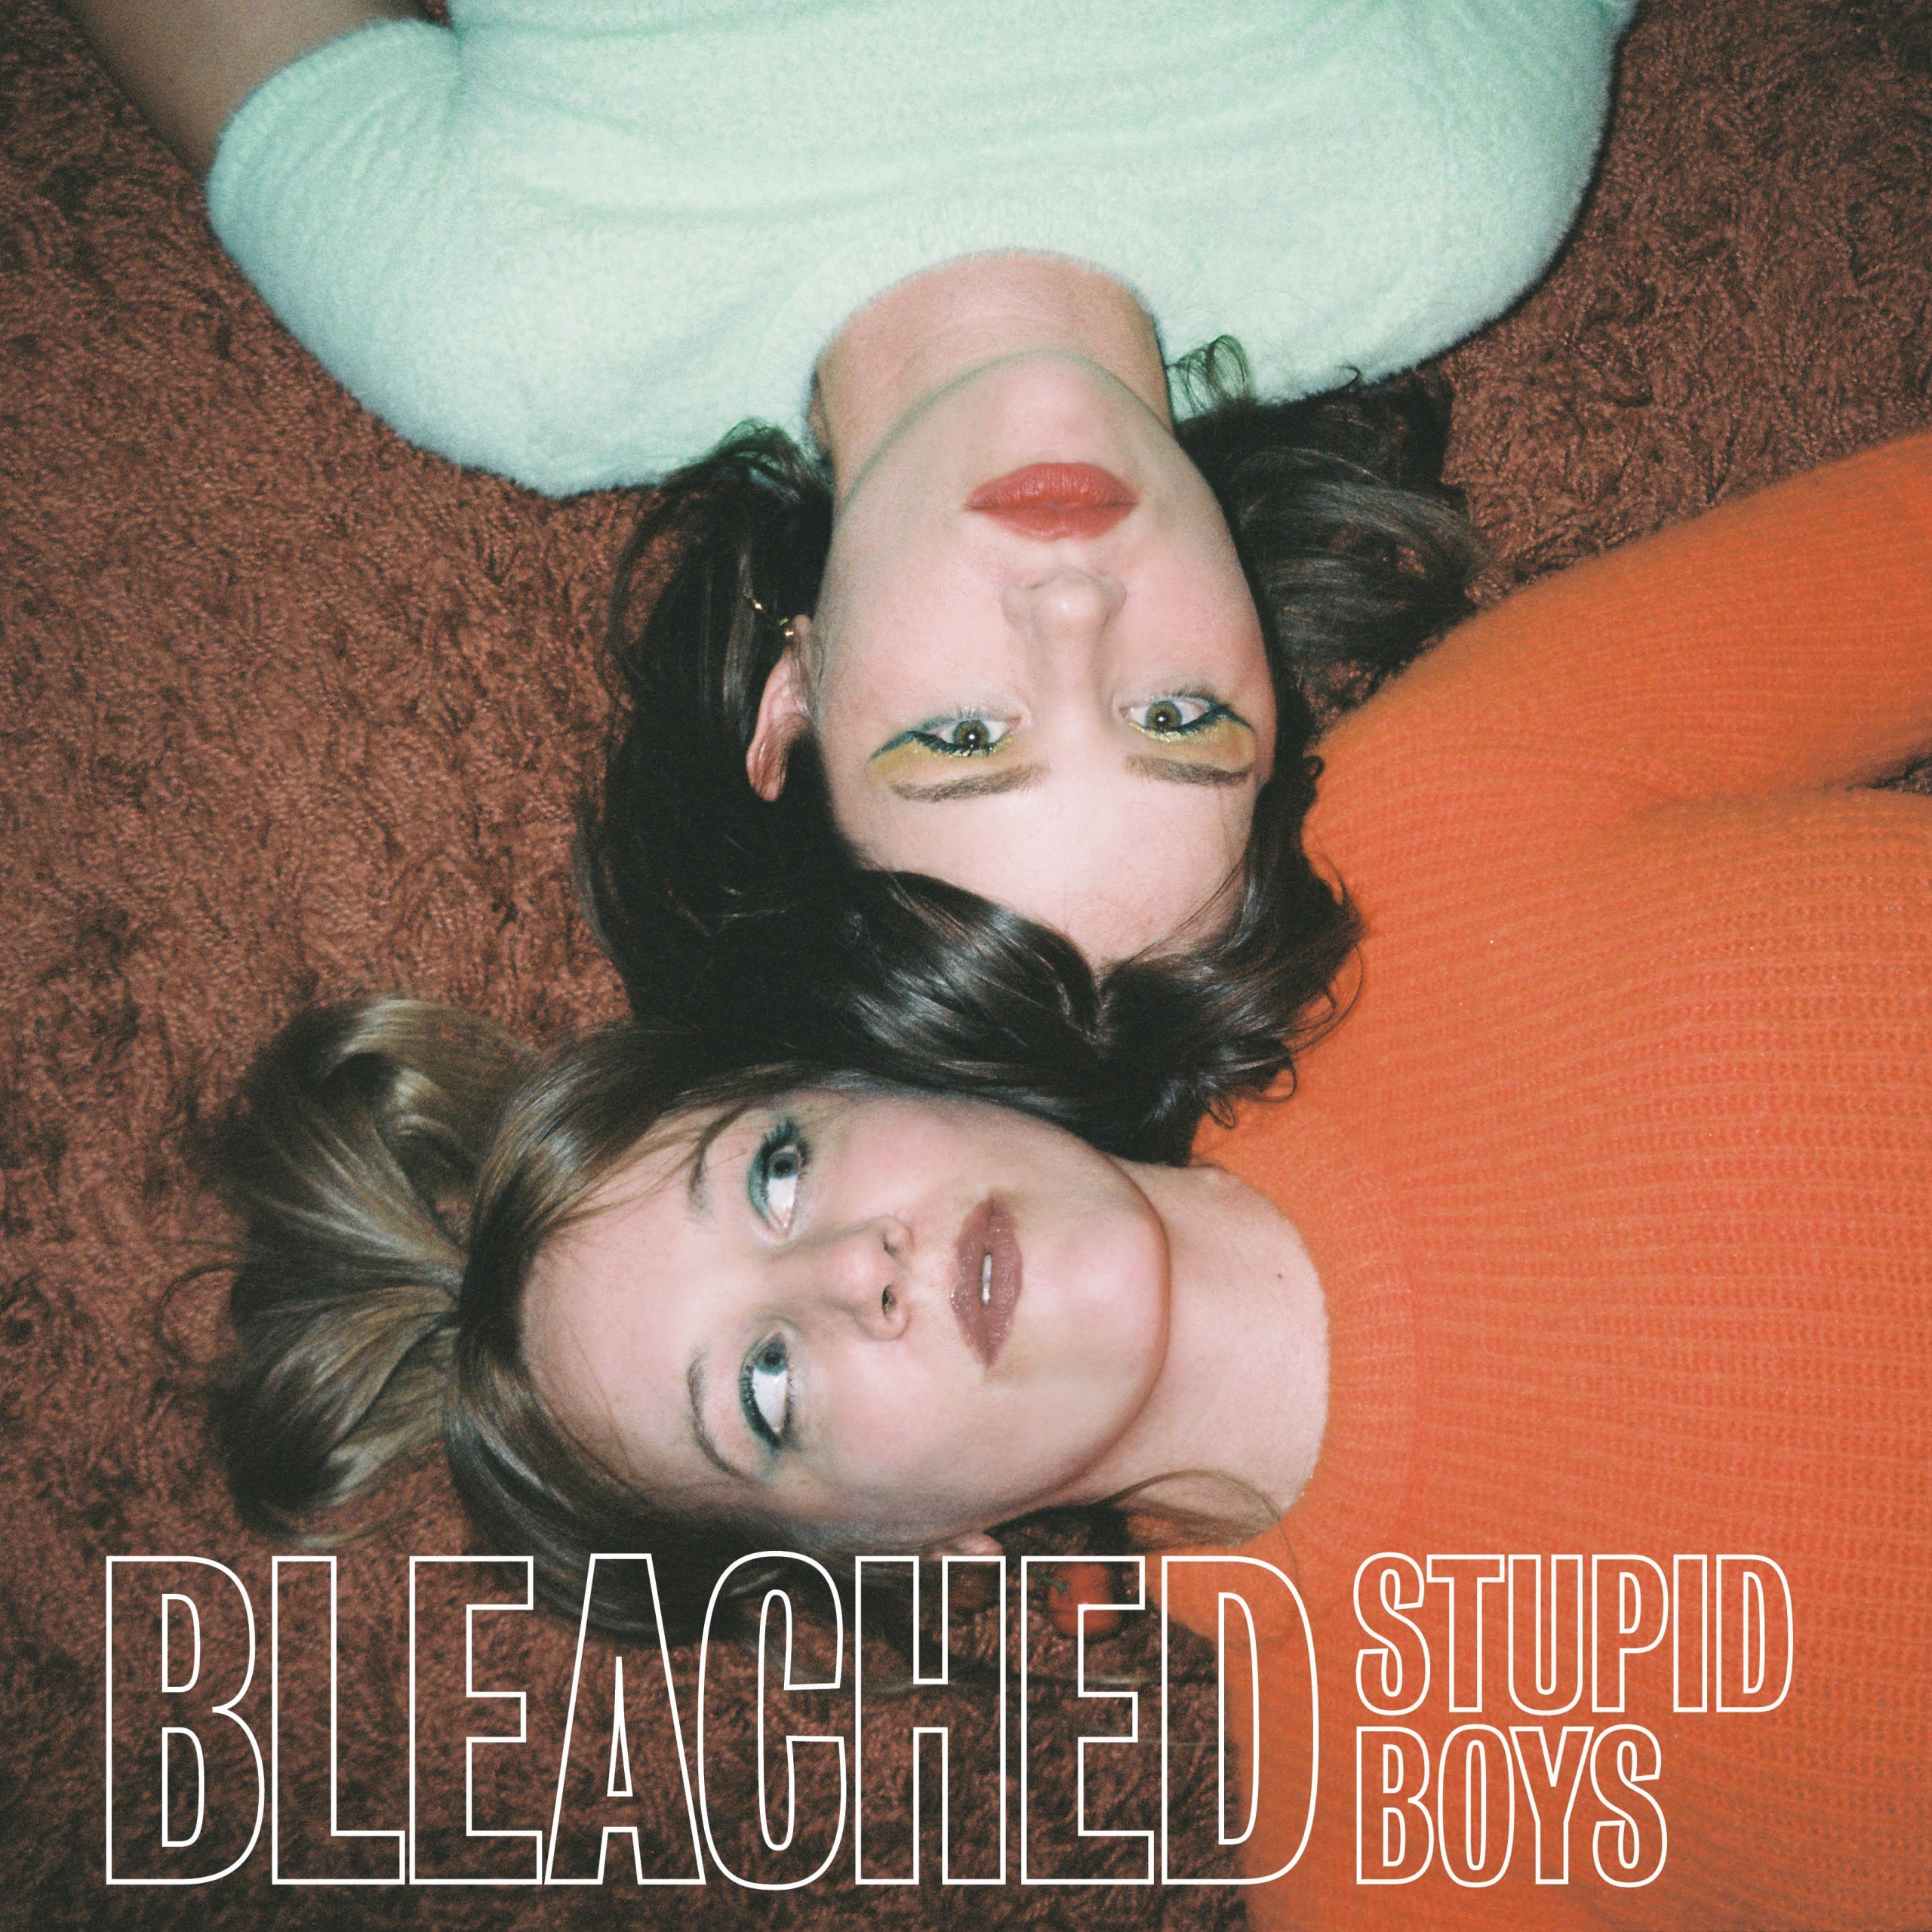 bleached stupid boys artwork